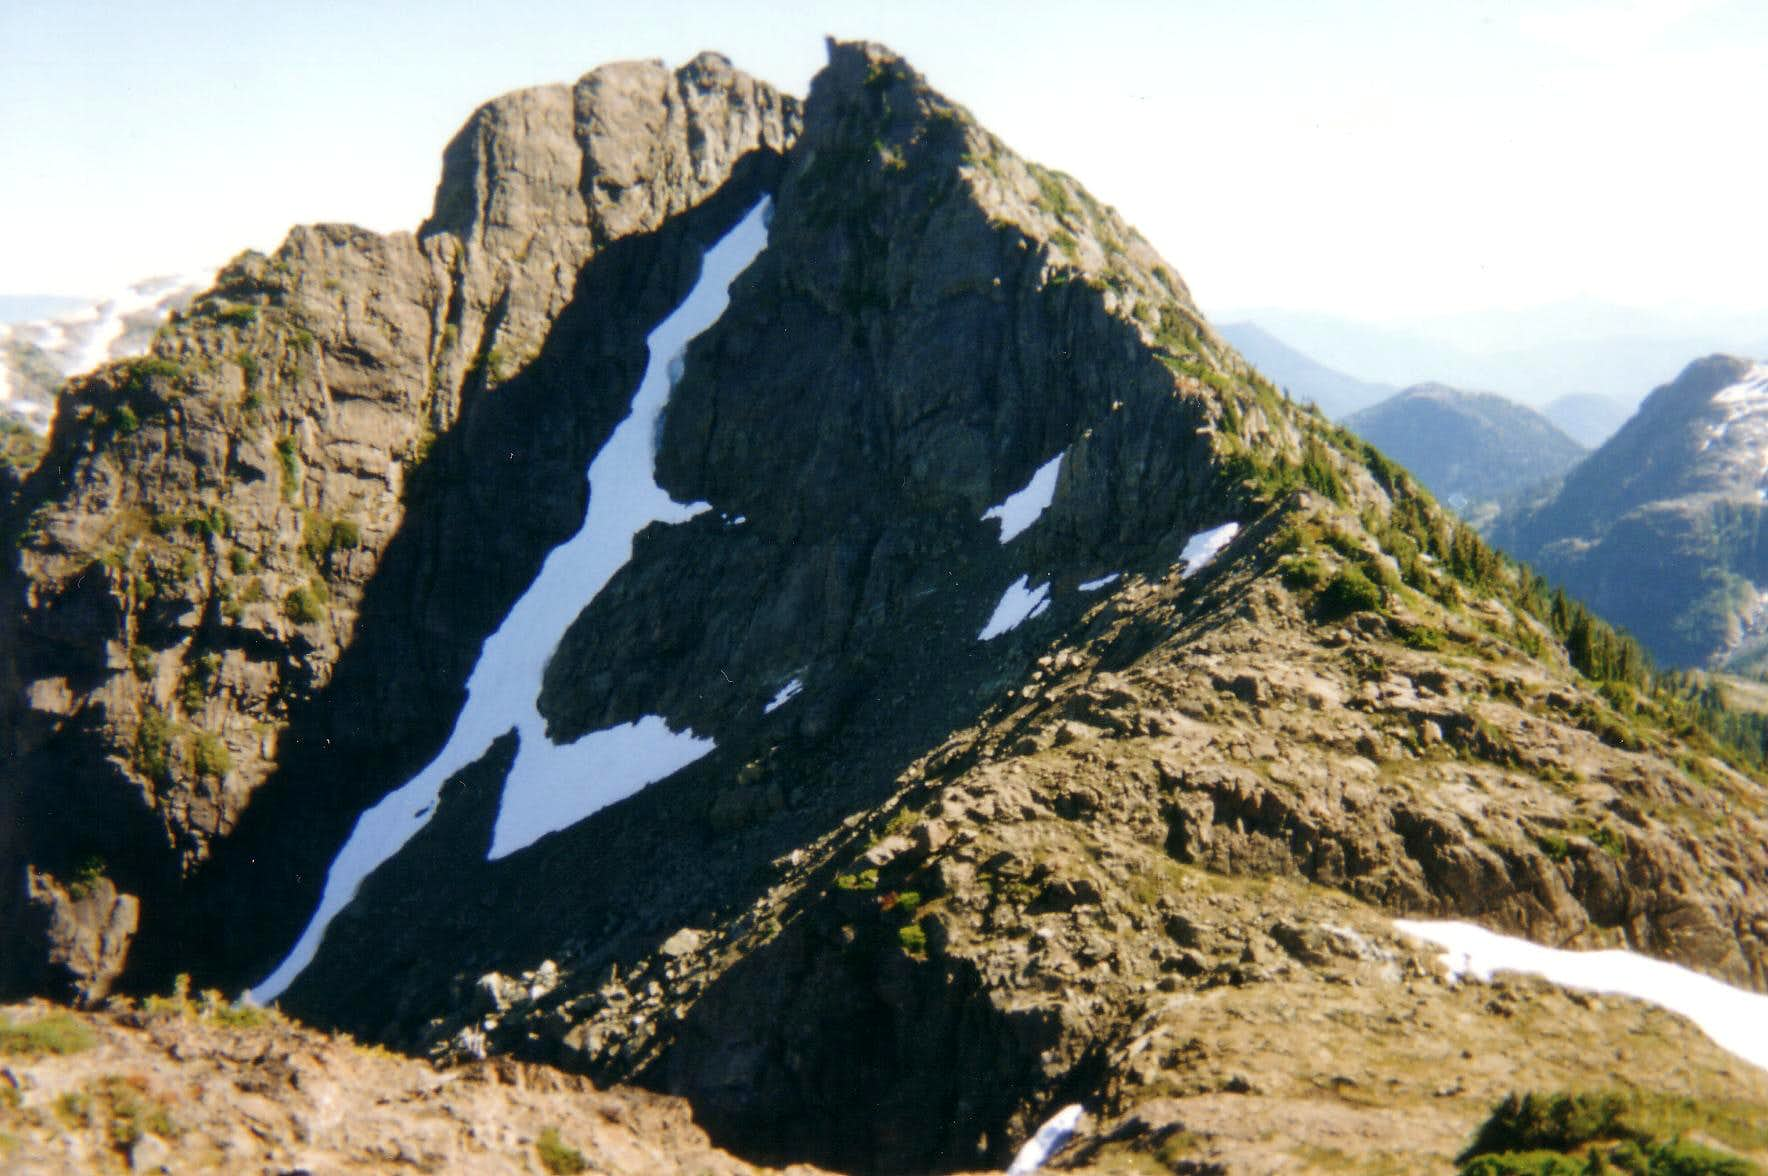 Central Crags – Flower Ridge